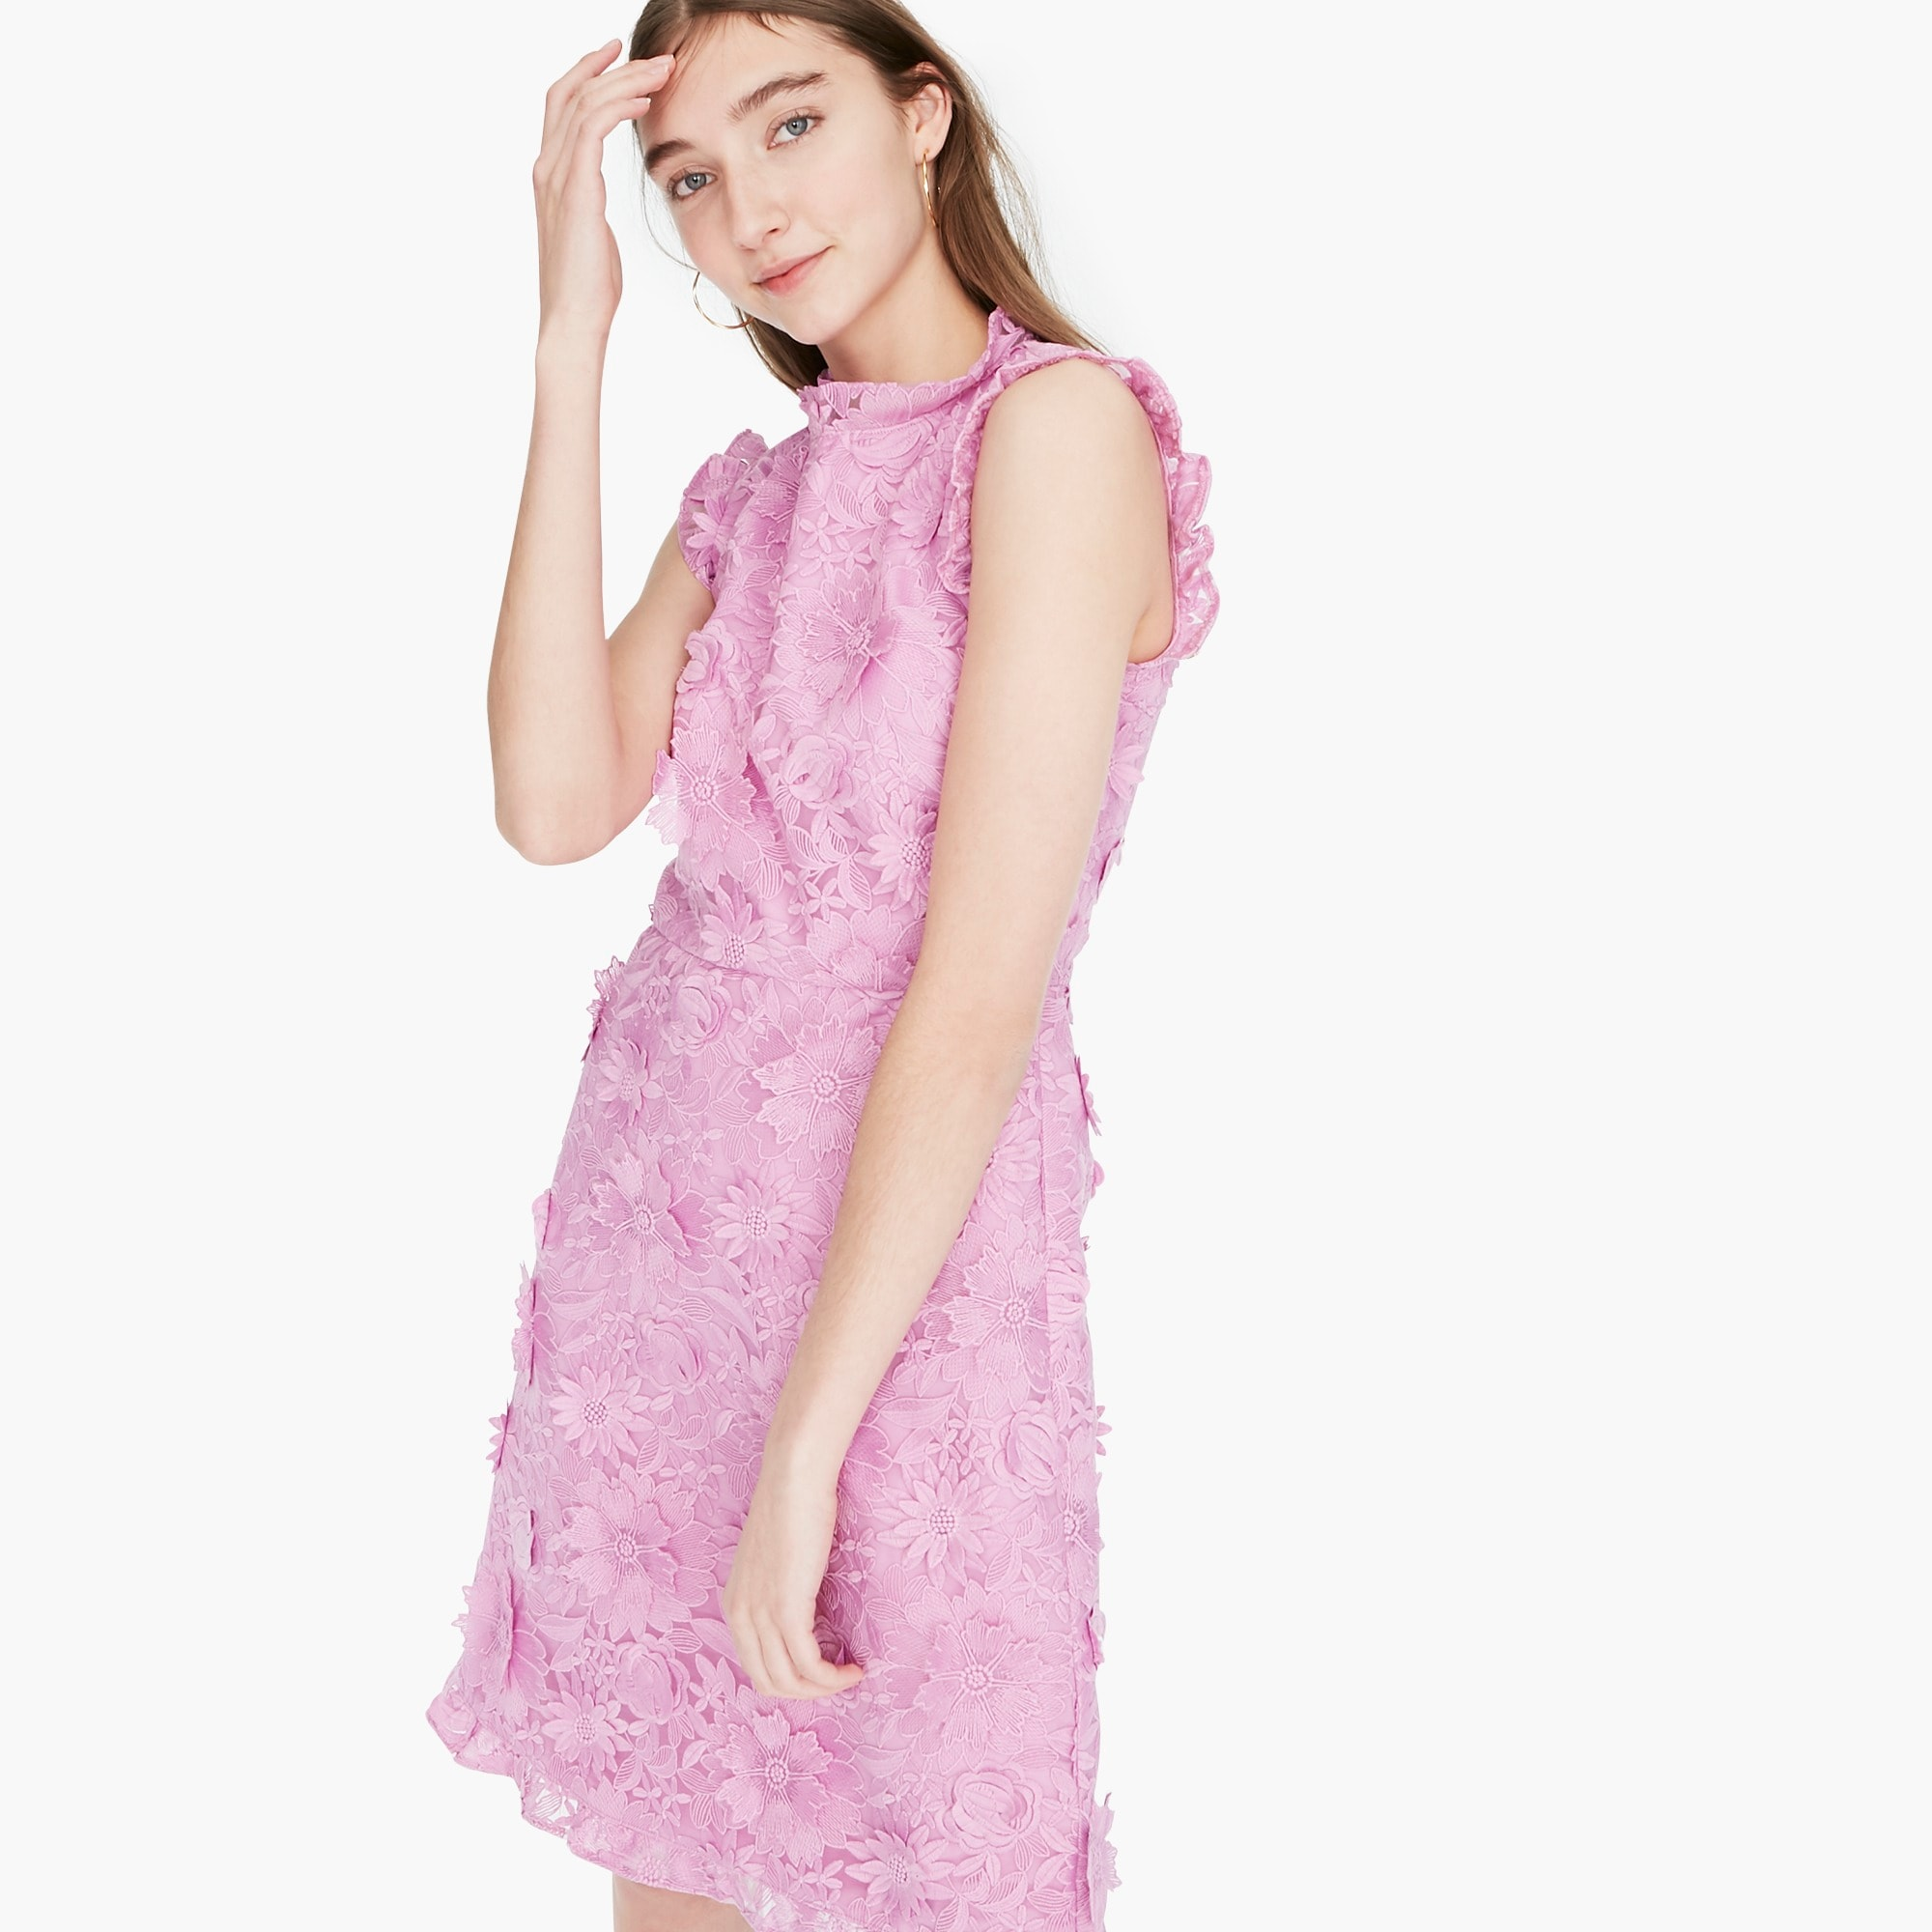 A-line dress with lace floral appliqués